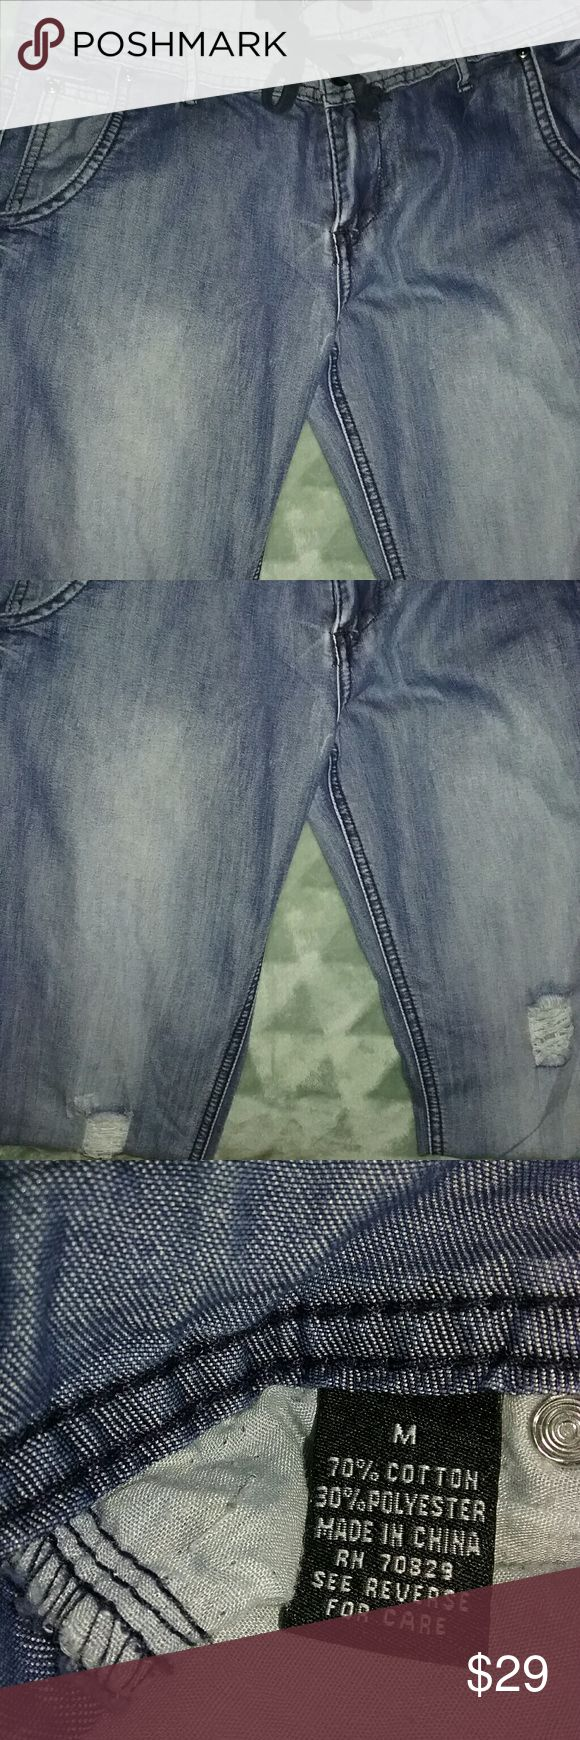 Blue jeans joggers Pre owned in excellent condition Jeans Ankle & Cropped